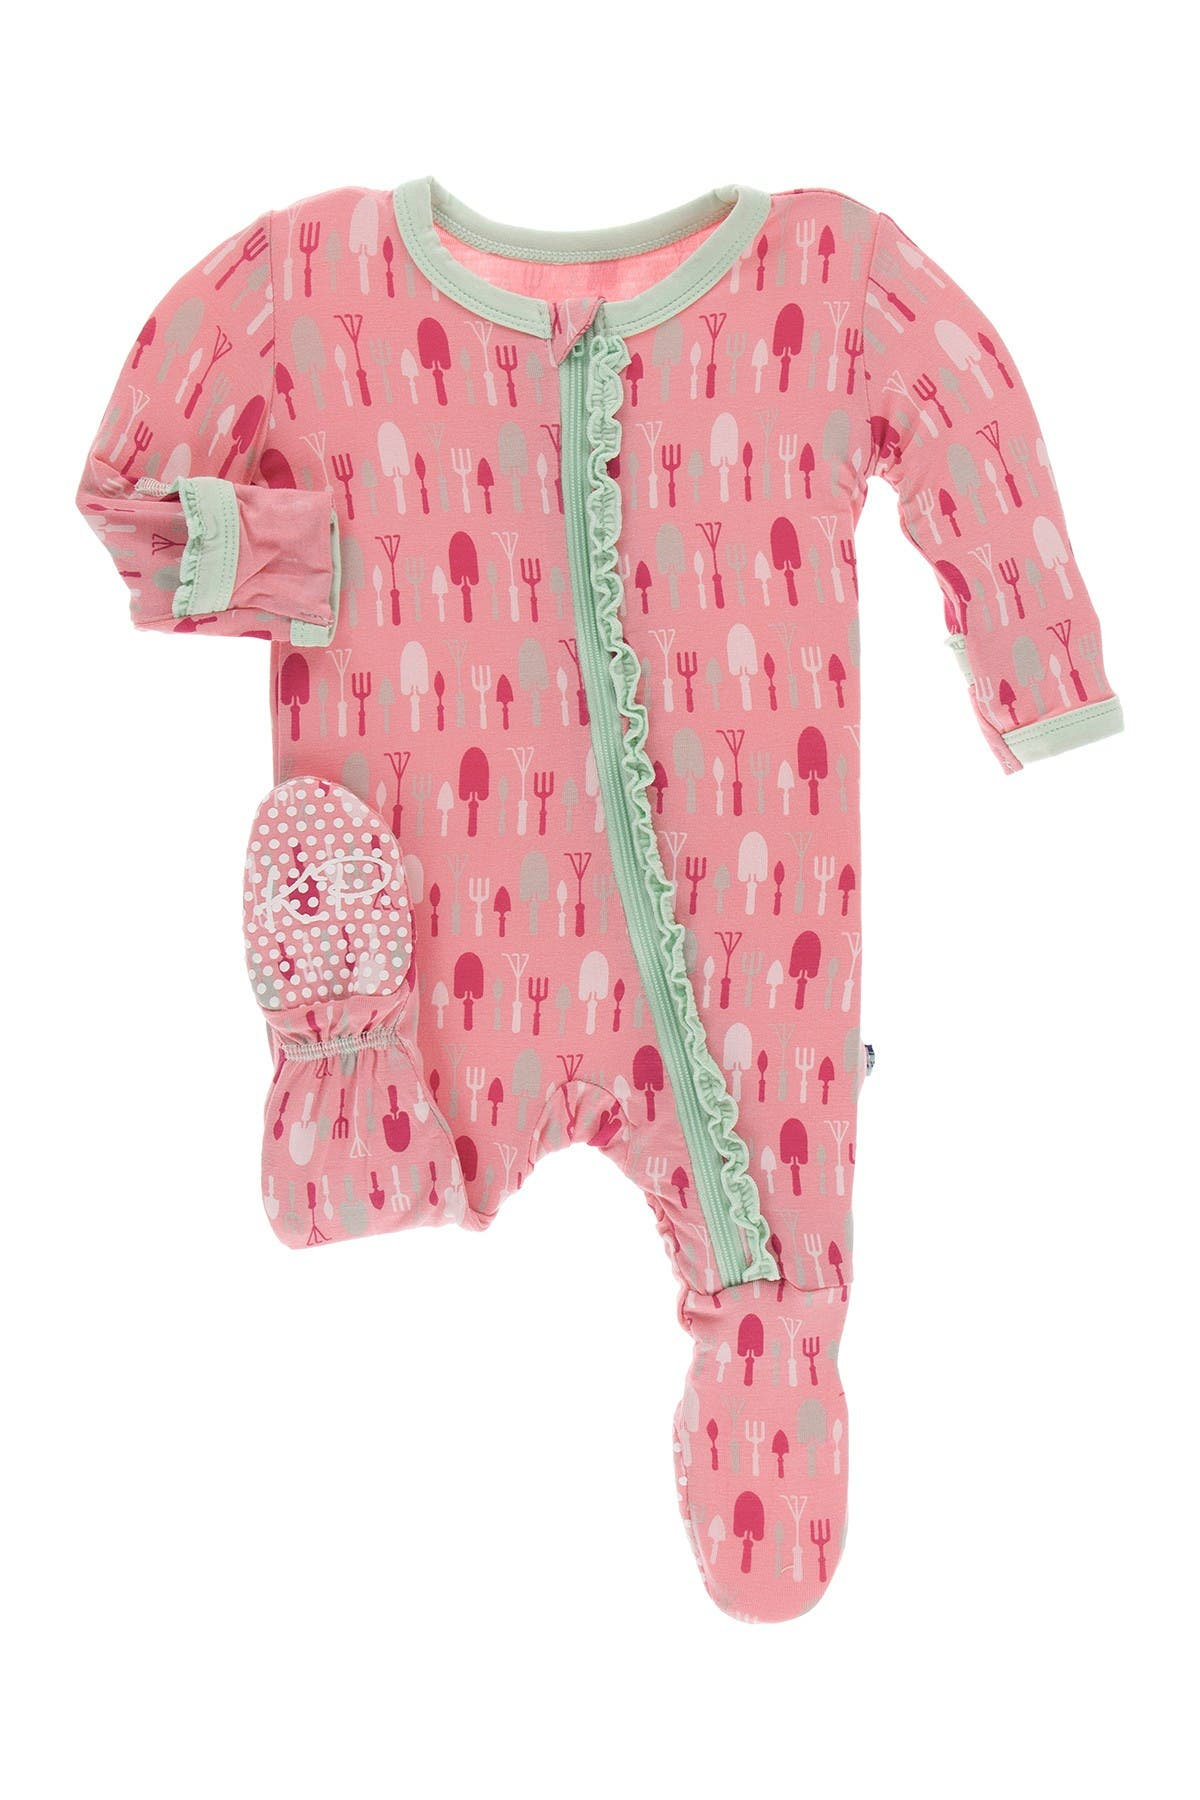 Image of KicKee Pants Print Muffin Ruffle Footie with Zipper in Strawberry Garden Tools